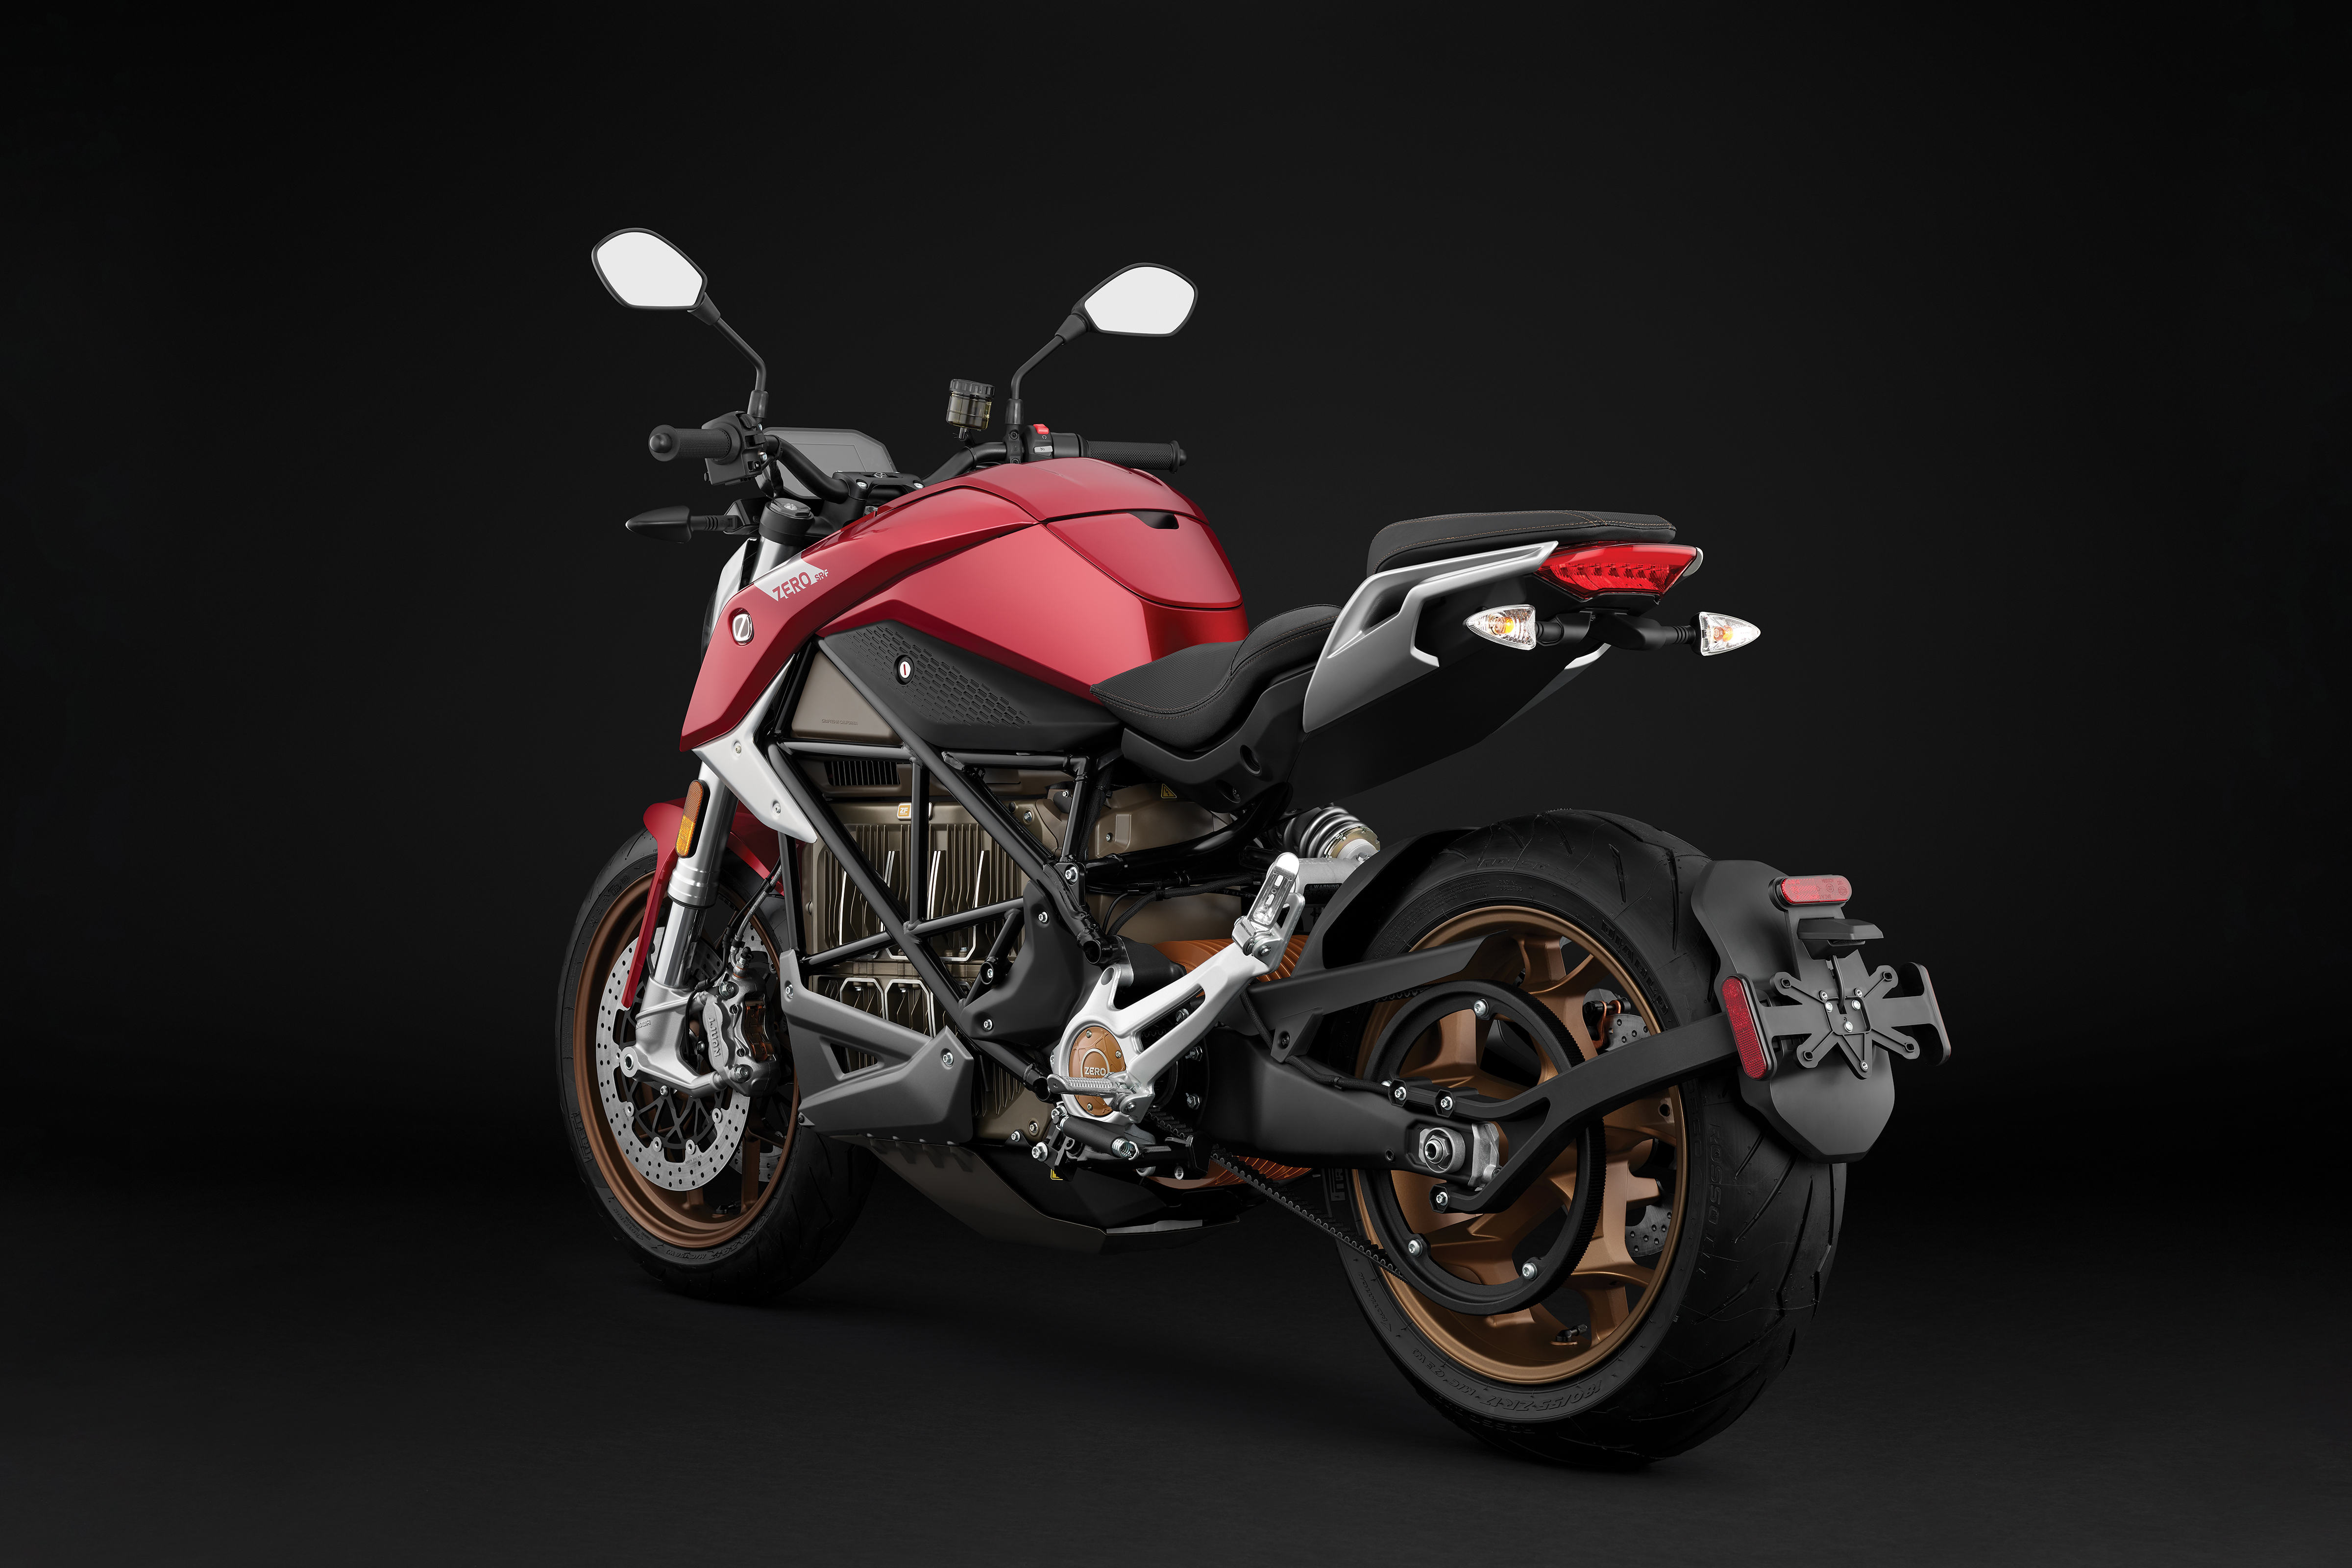 2020 Zero SR/F ZF14.4 Red Electric Motorcycle: Left Angle, Rear